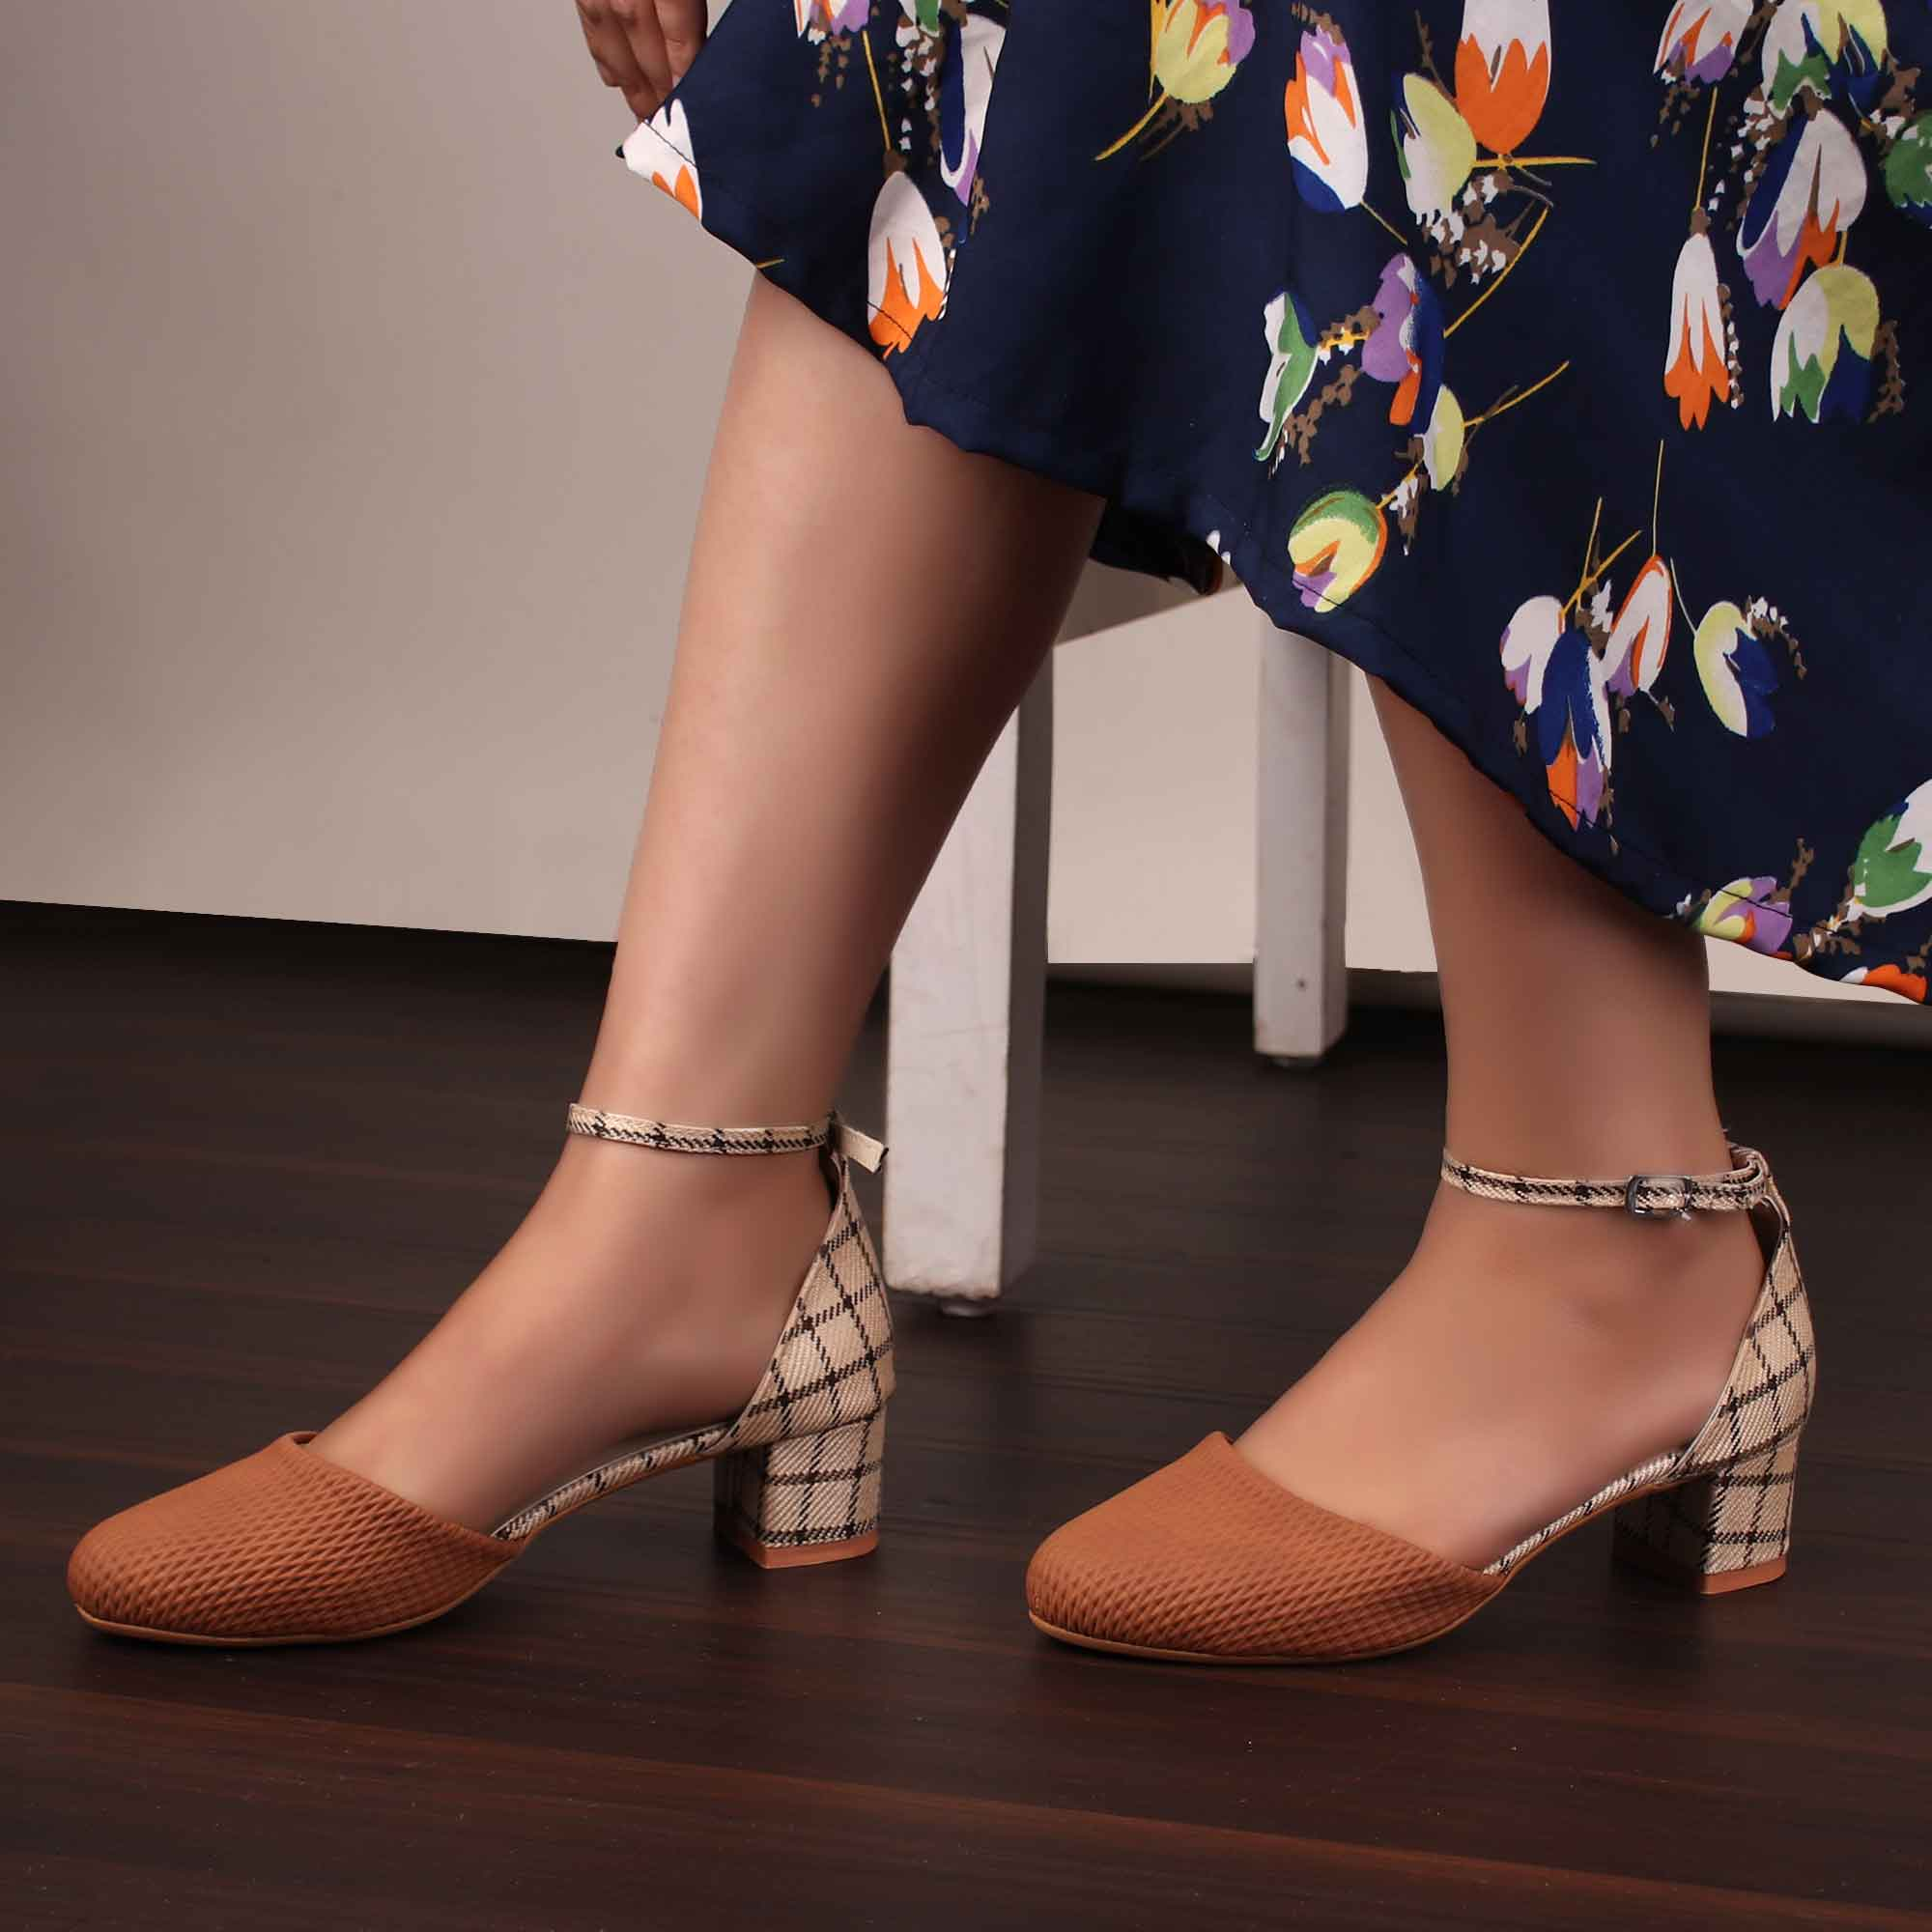 Foot Wear,The Interweave Checked Tan Block Heels - Cippele Multi Store